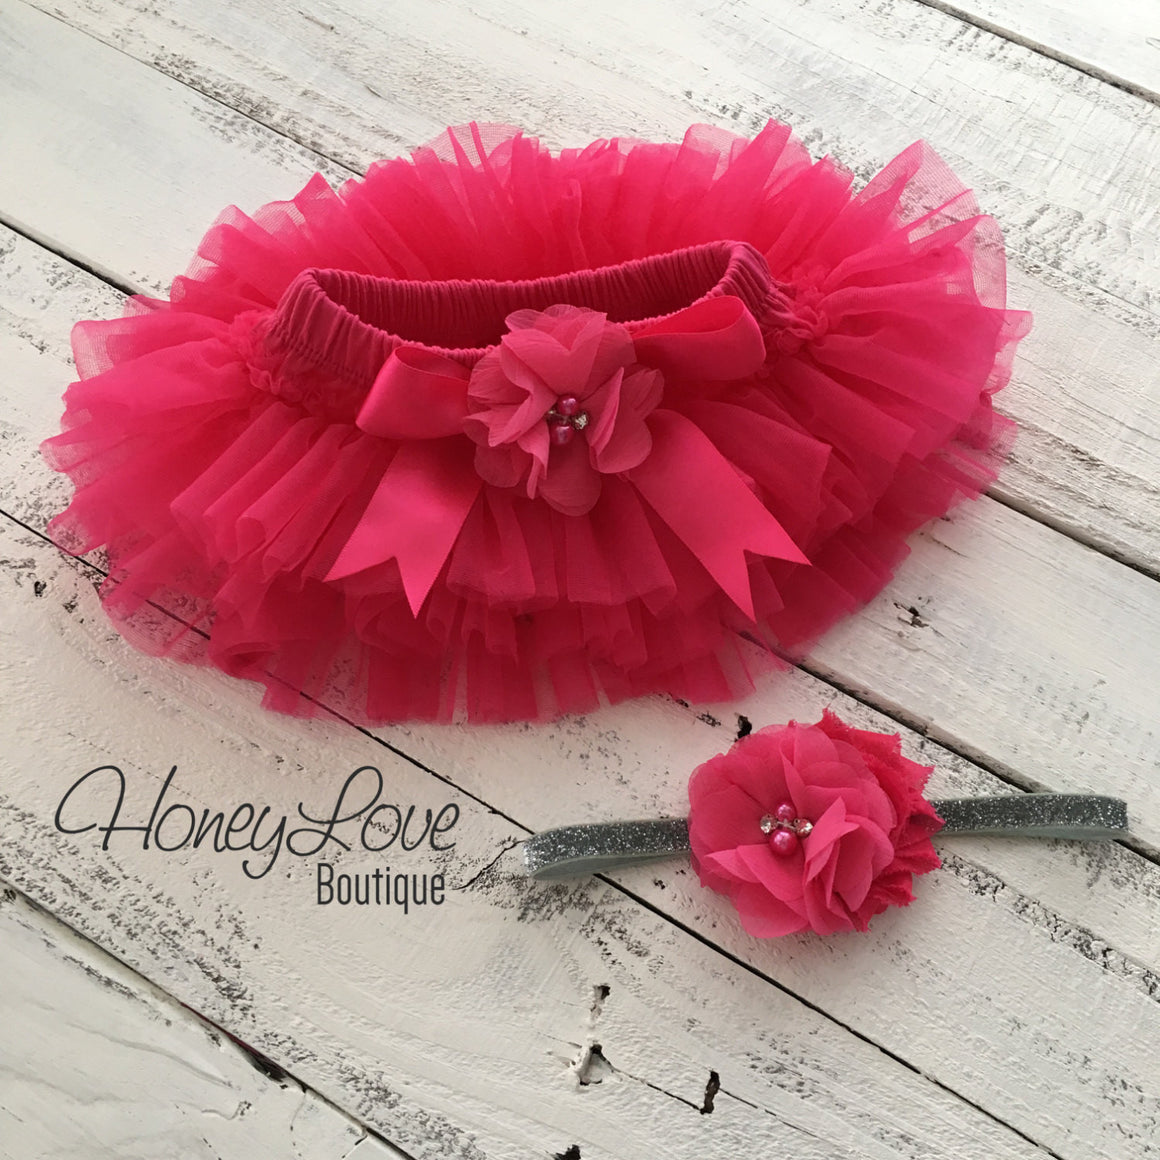 Watermelon Pink tutu skirt bloomers and silver glitter headband - embellished bloomer - HoneyLoveBoutique